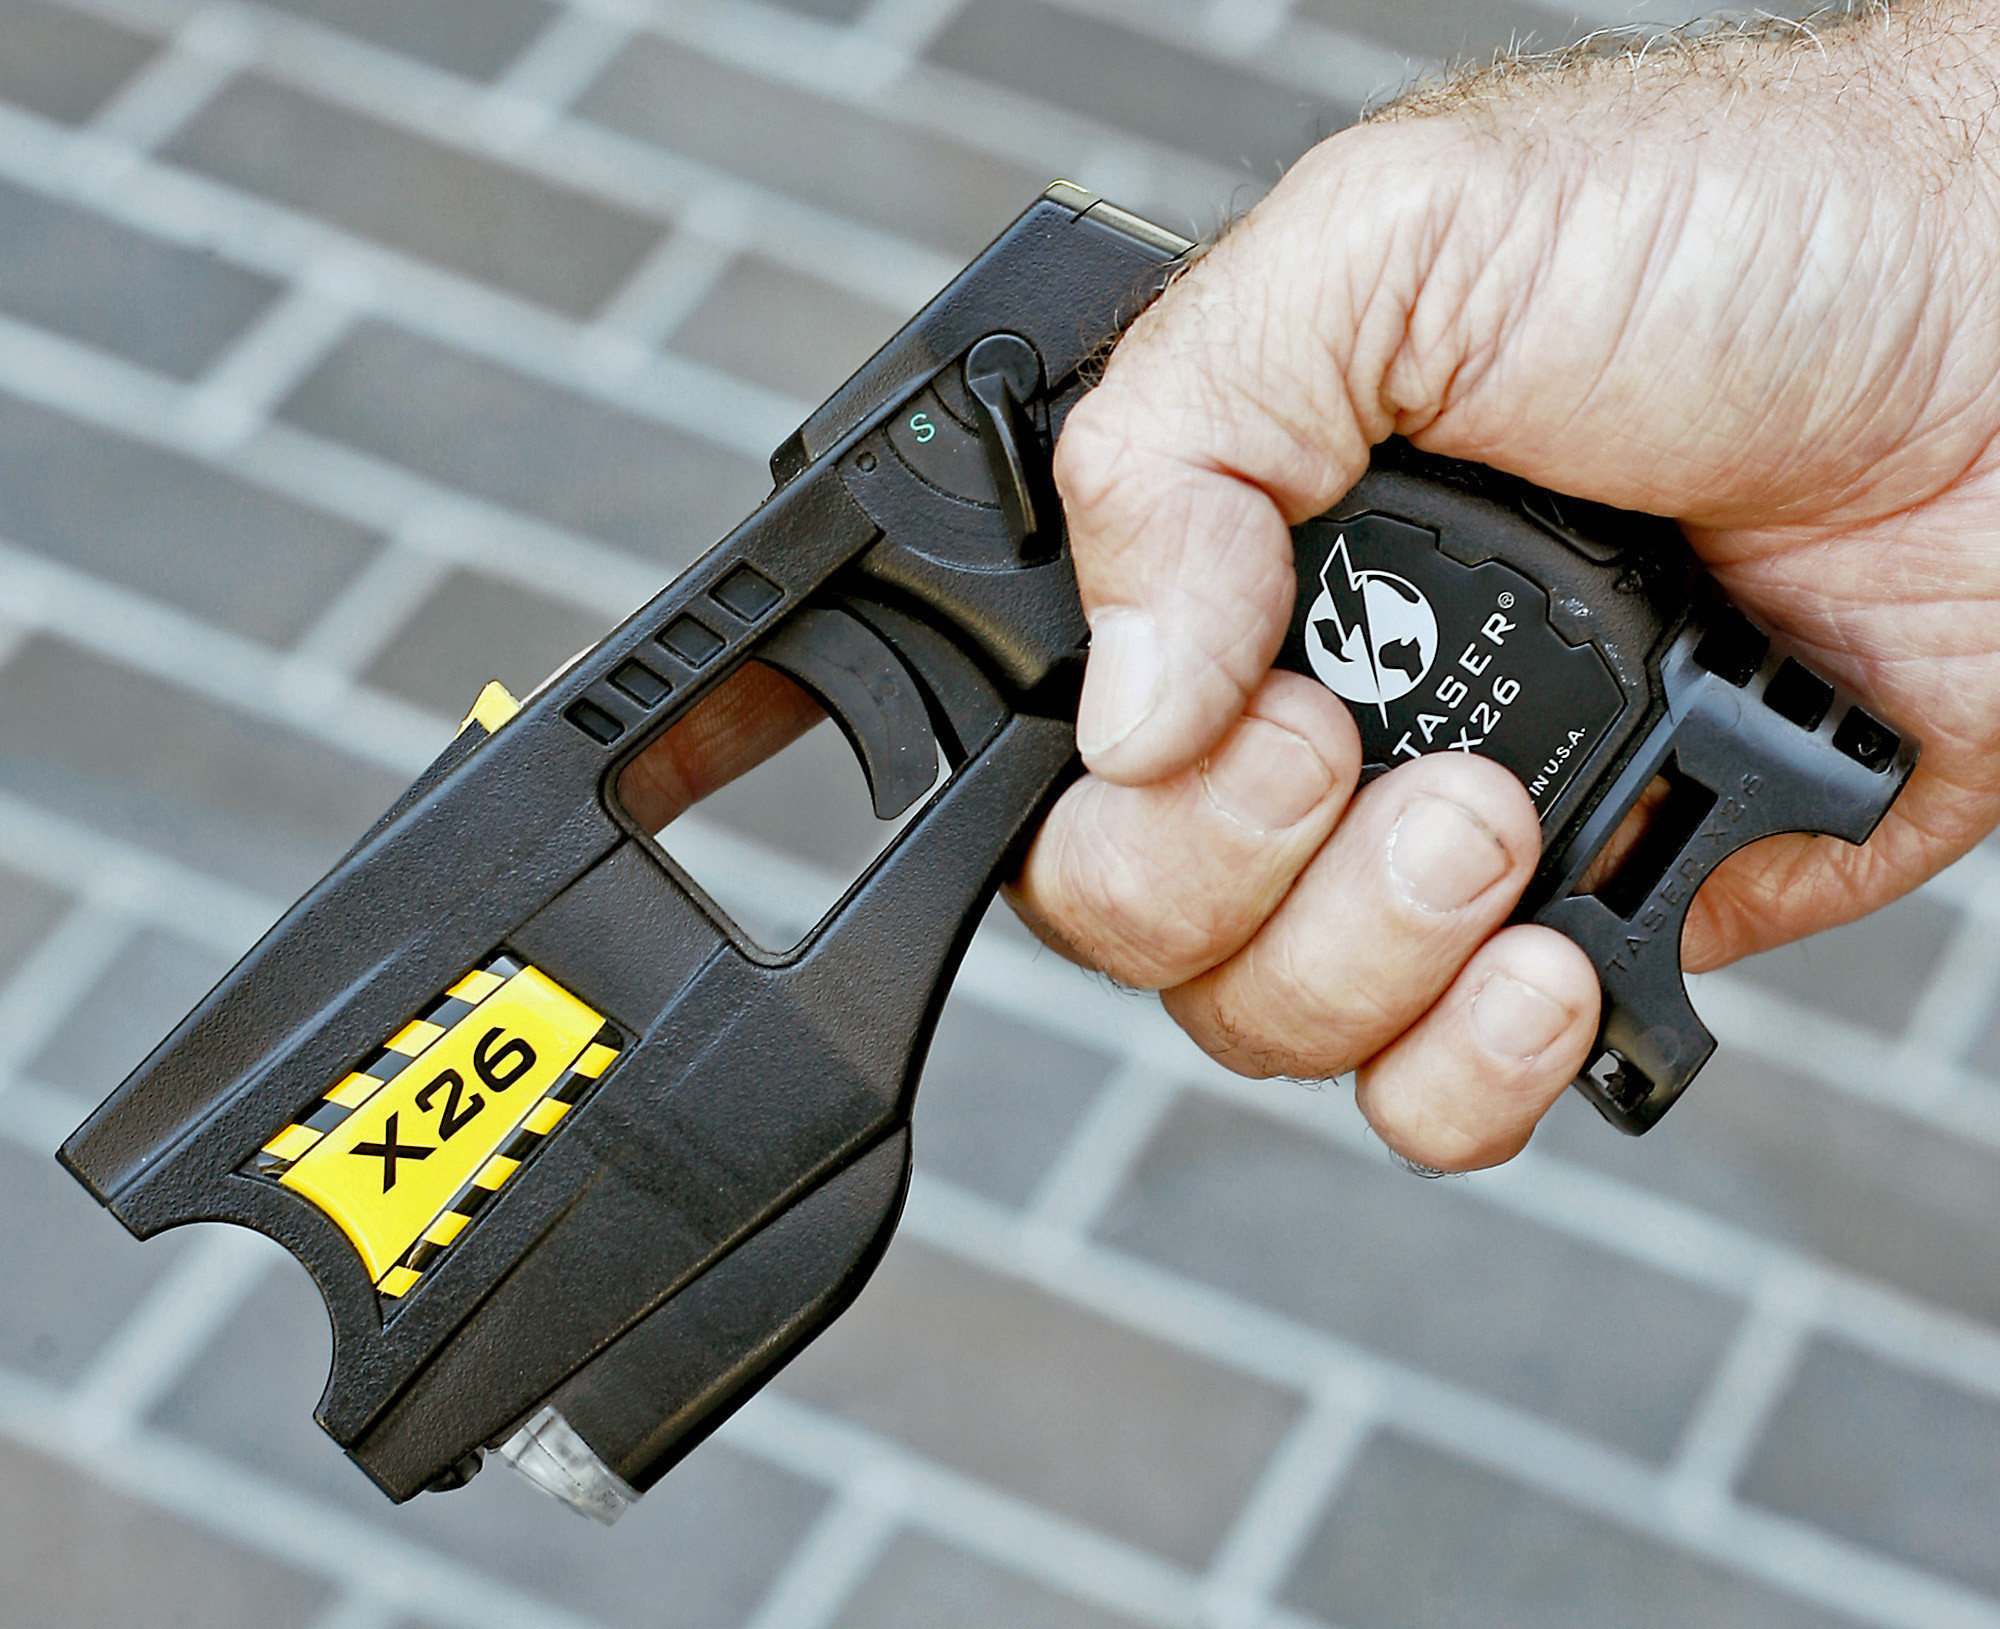 Do you think the police taser should be considered a lethal weapon?